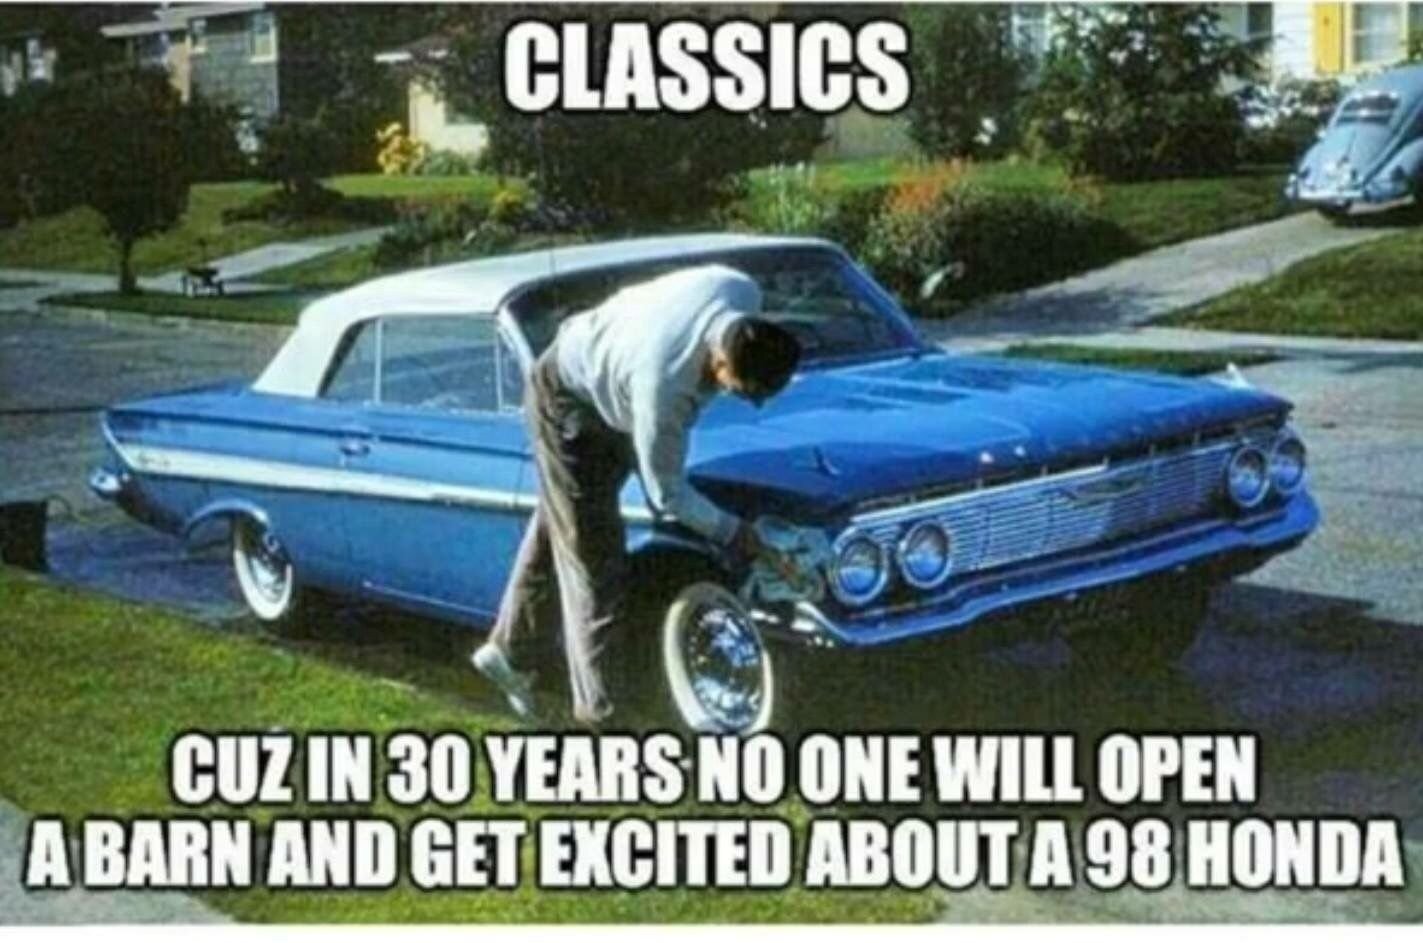 Chevy Quotes Pinchris Hudson On Car  Pinterest  Cars Car Memes And Memes